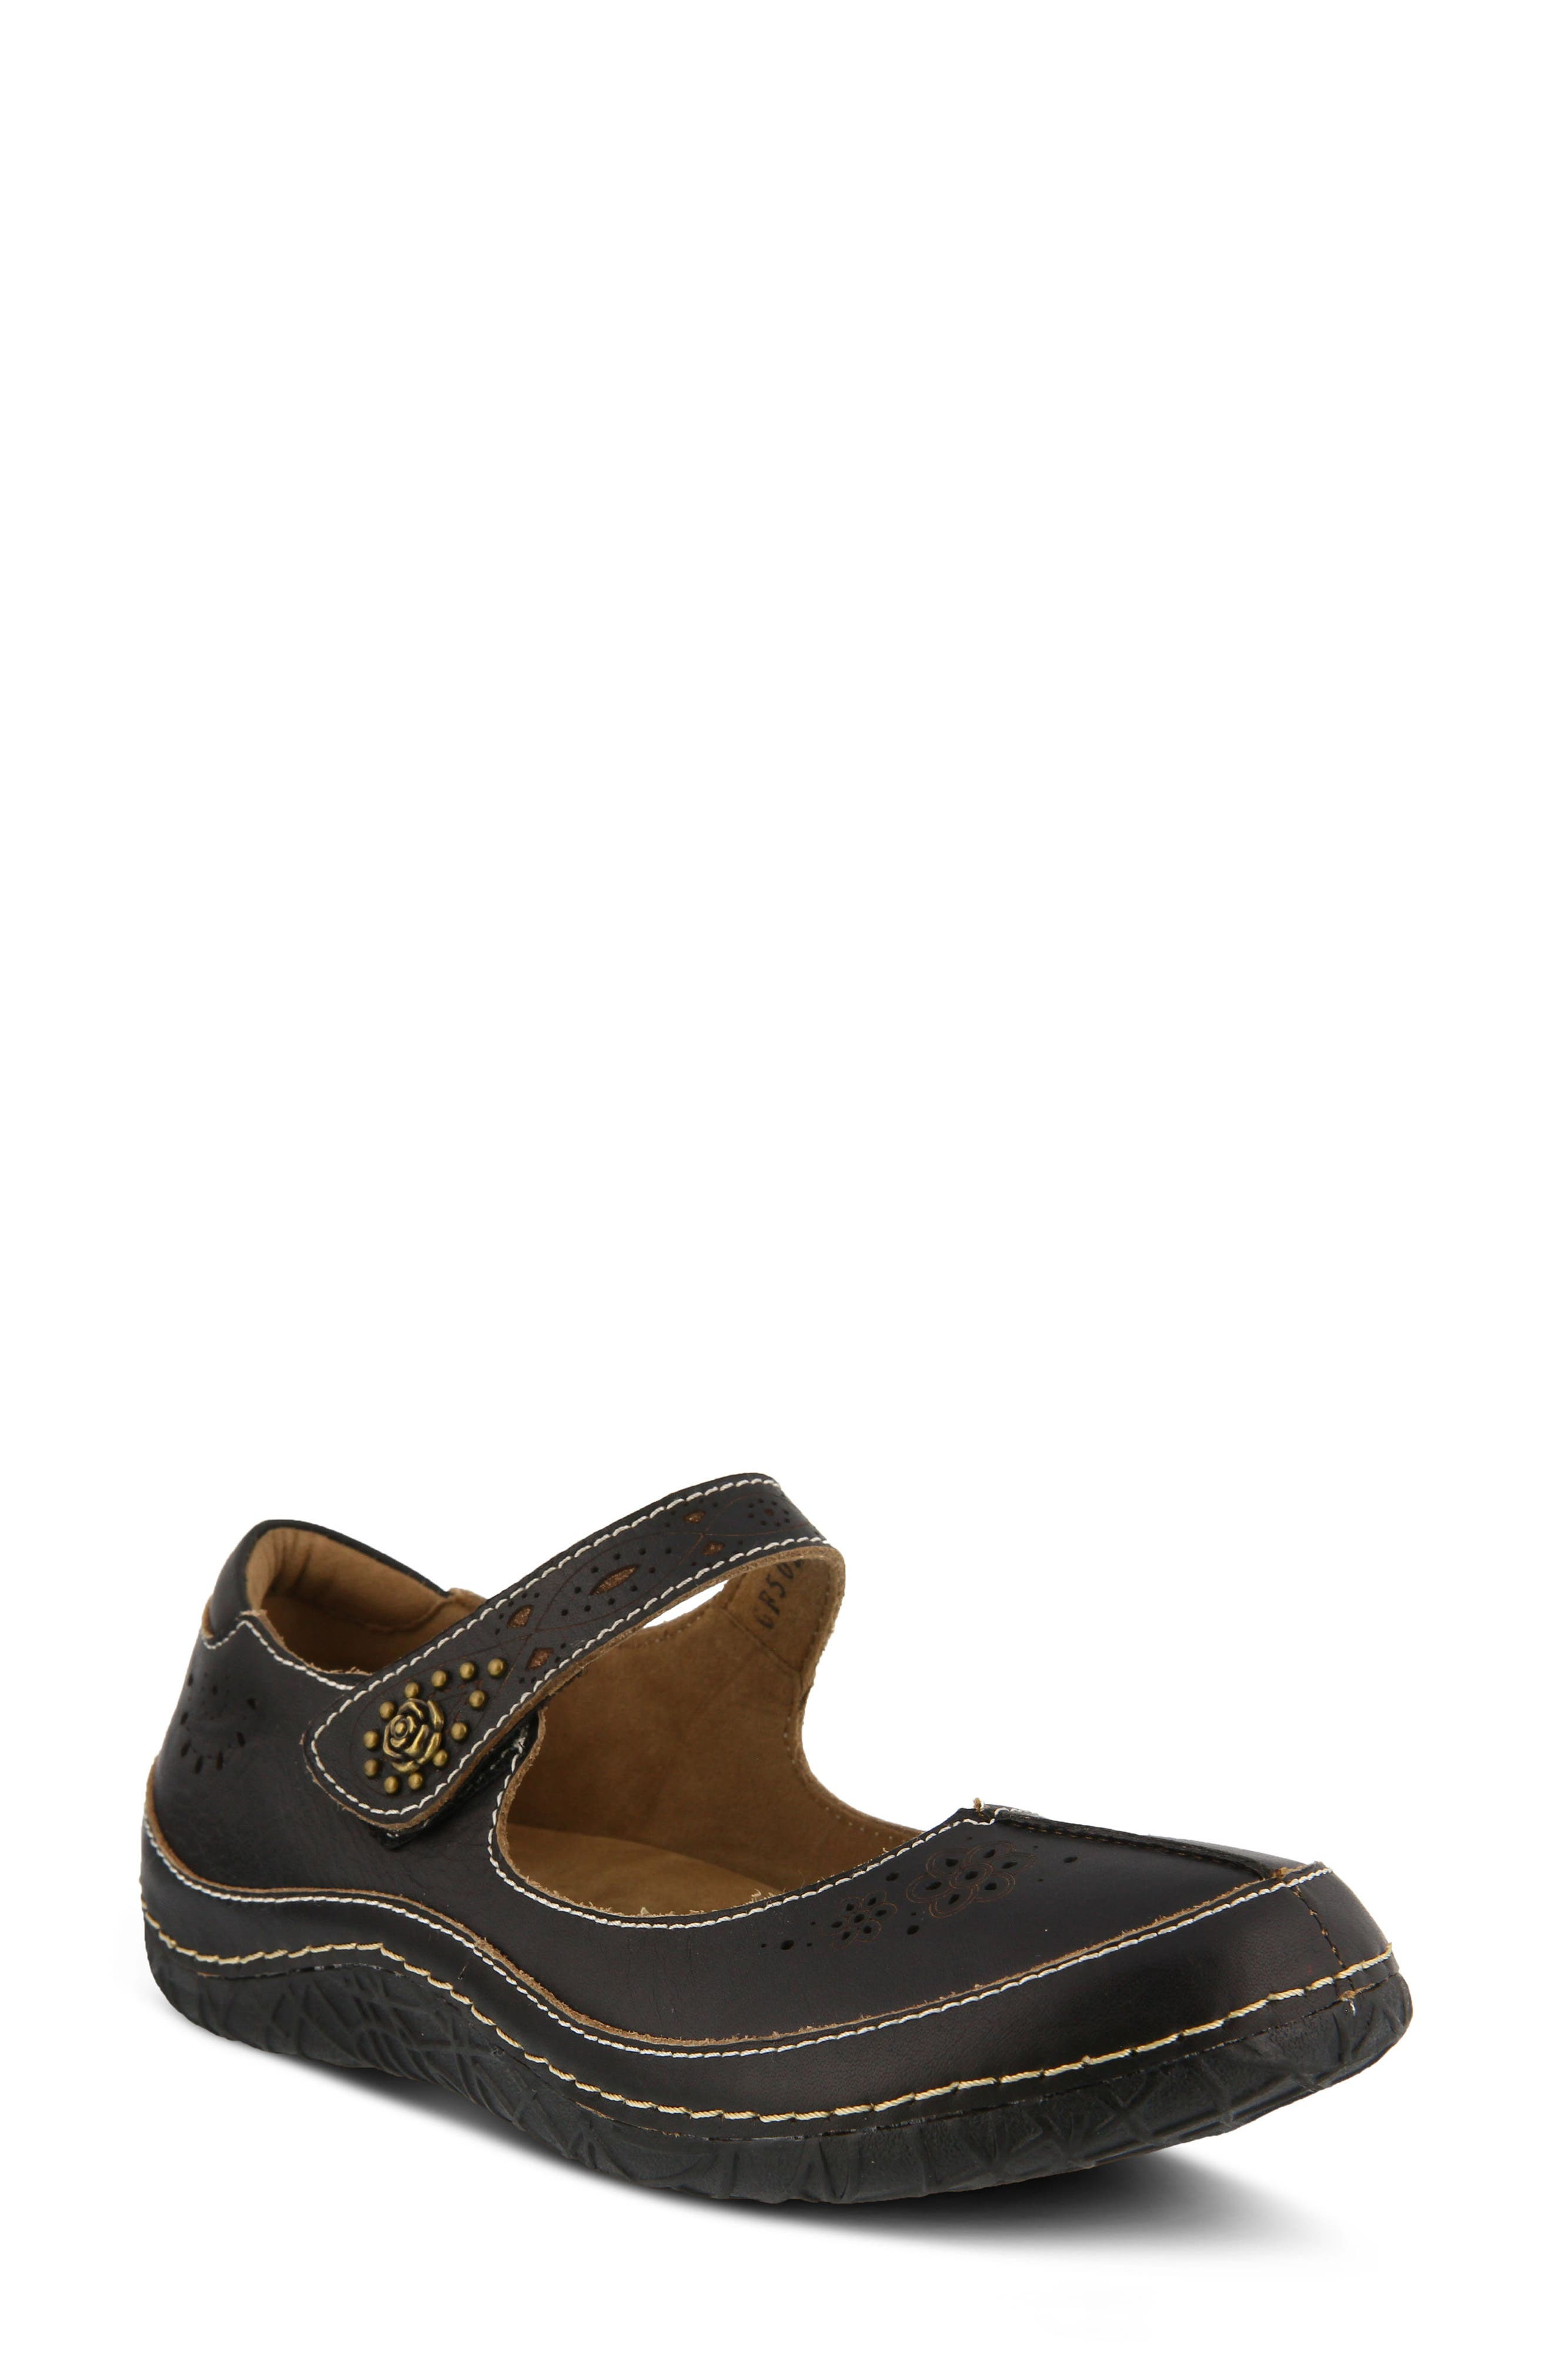 L'Artiste Lazarina Mary Jane Flat,                         Main,                         color, Black Leather